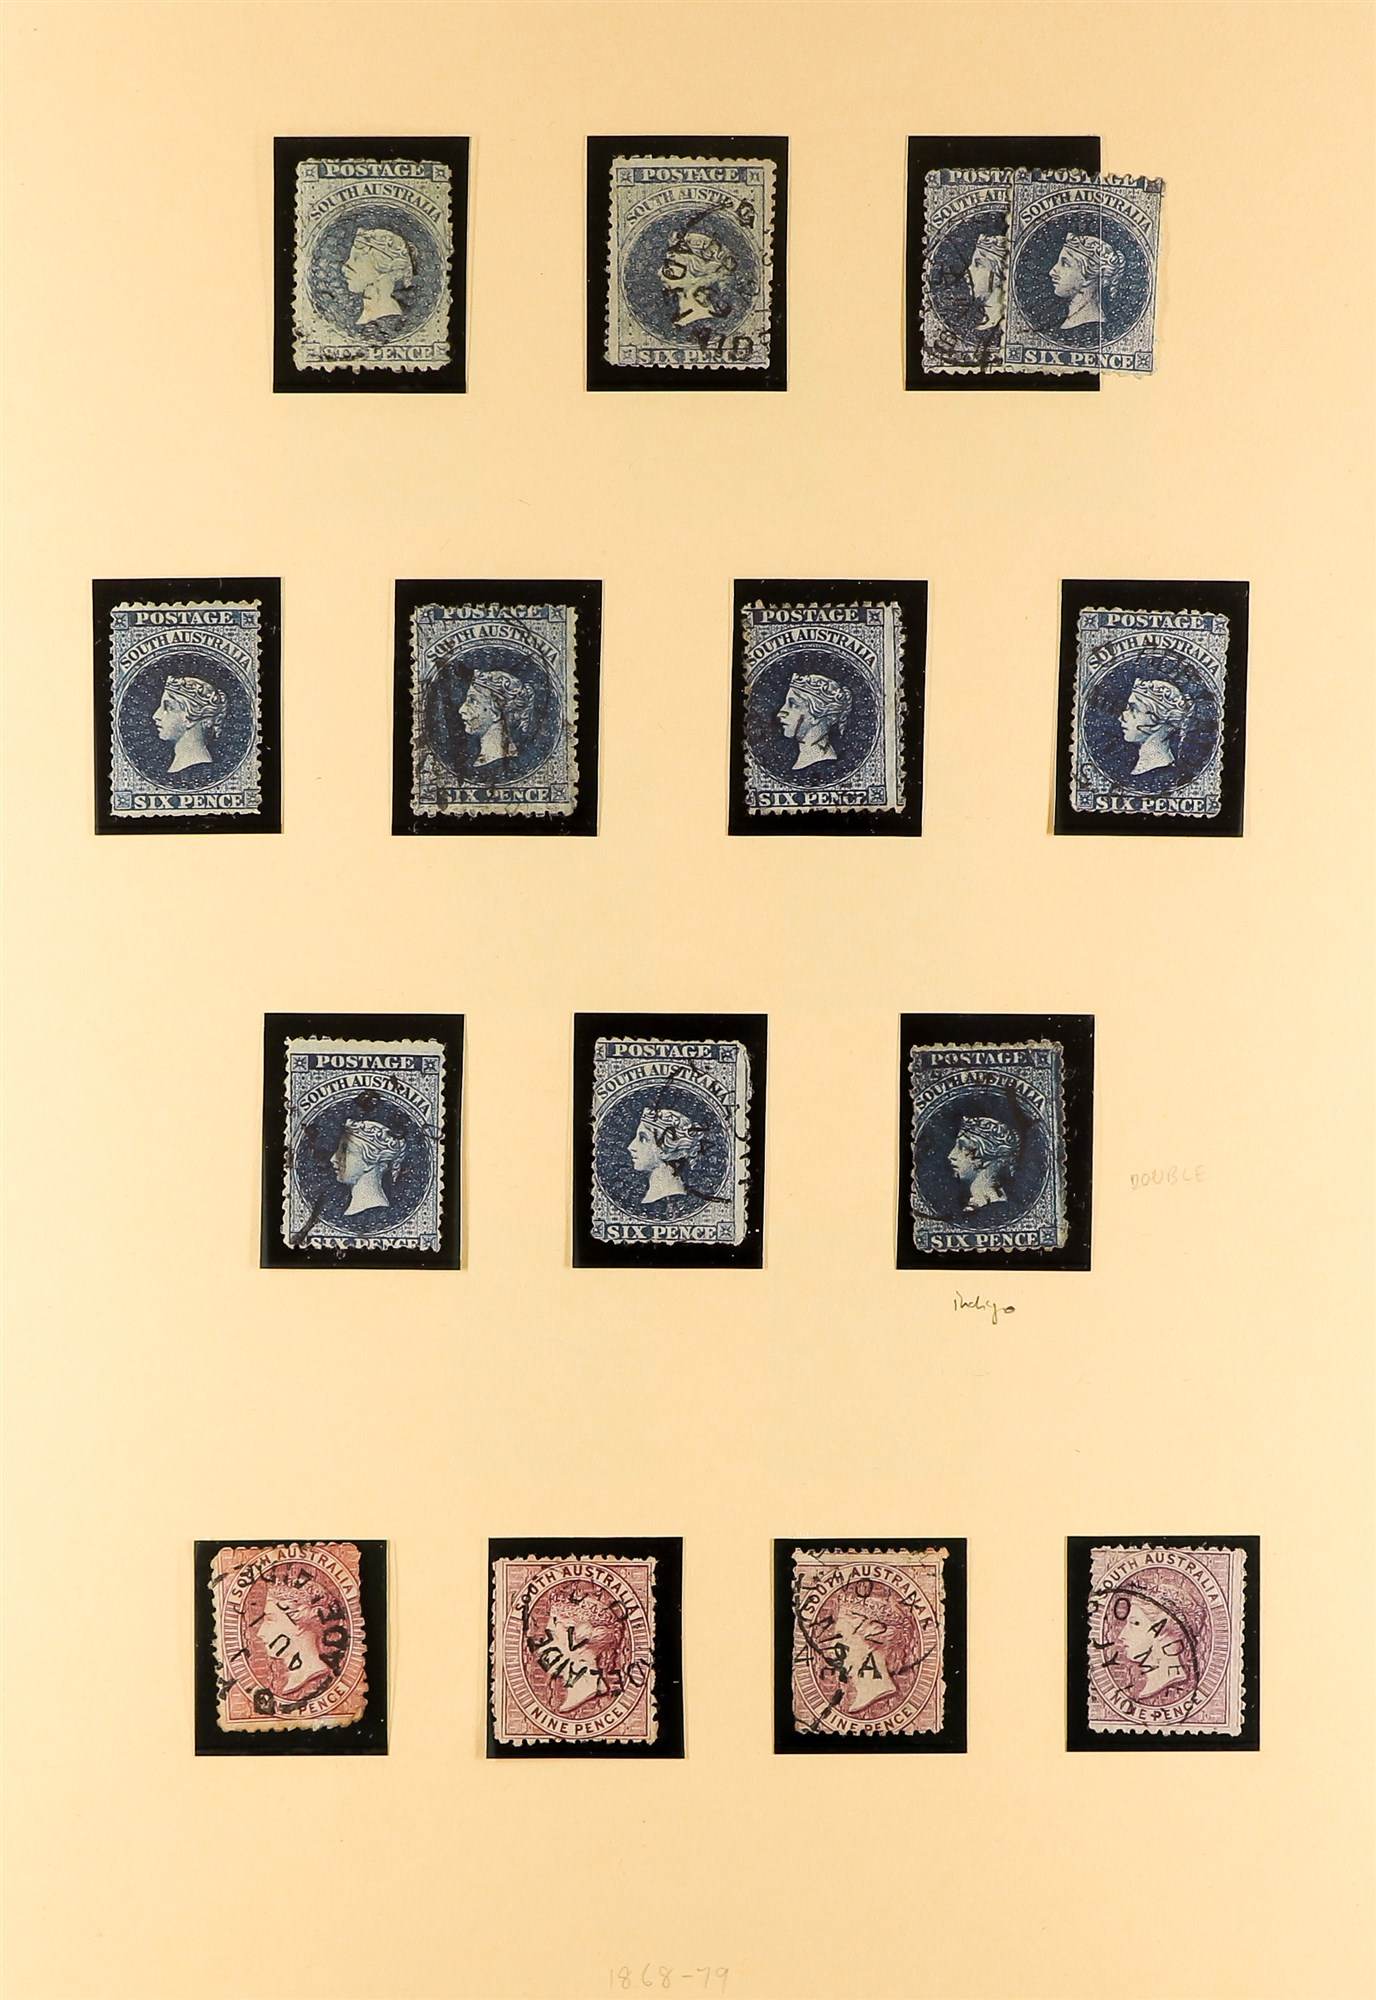 AUSTRALIAN STATES SOUTH AUSTRALIA 1858-1912 mainly used collection incl.1858-9 First Roulettes all - Image 6 of 10